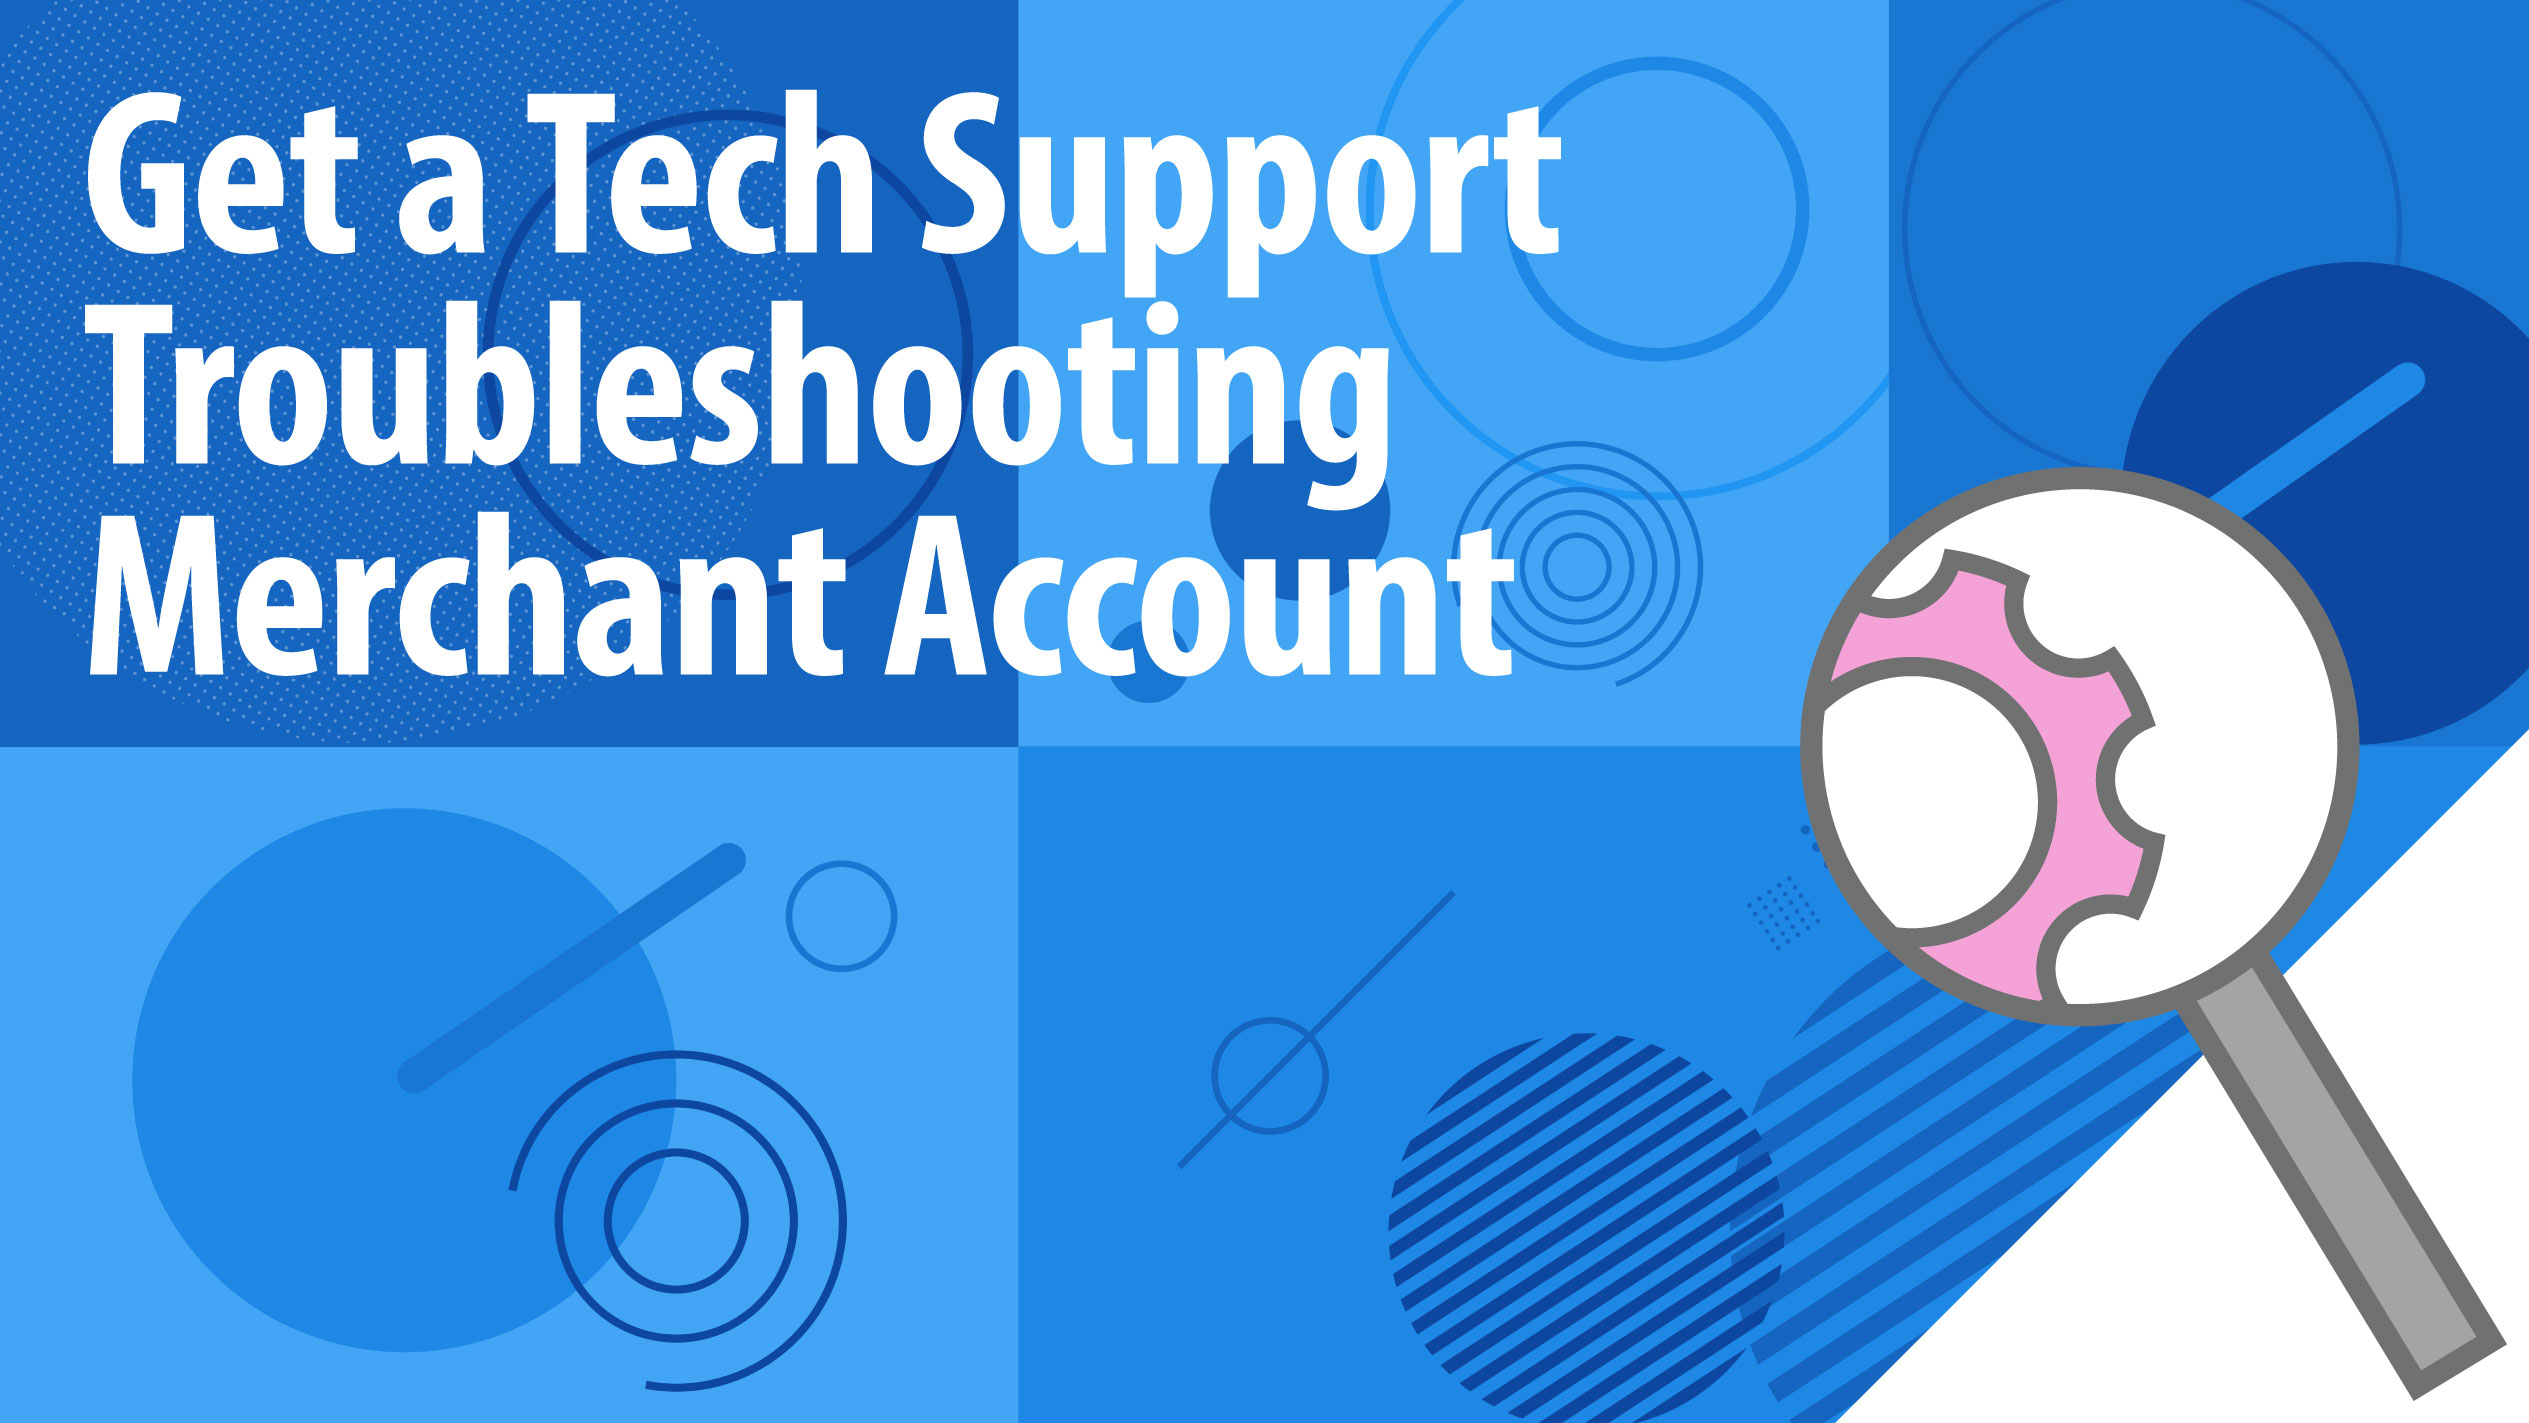 Get a Tech Support Troubleshooting Merchant Account